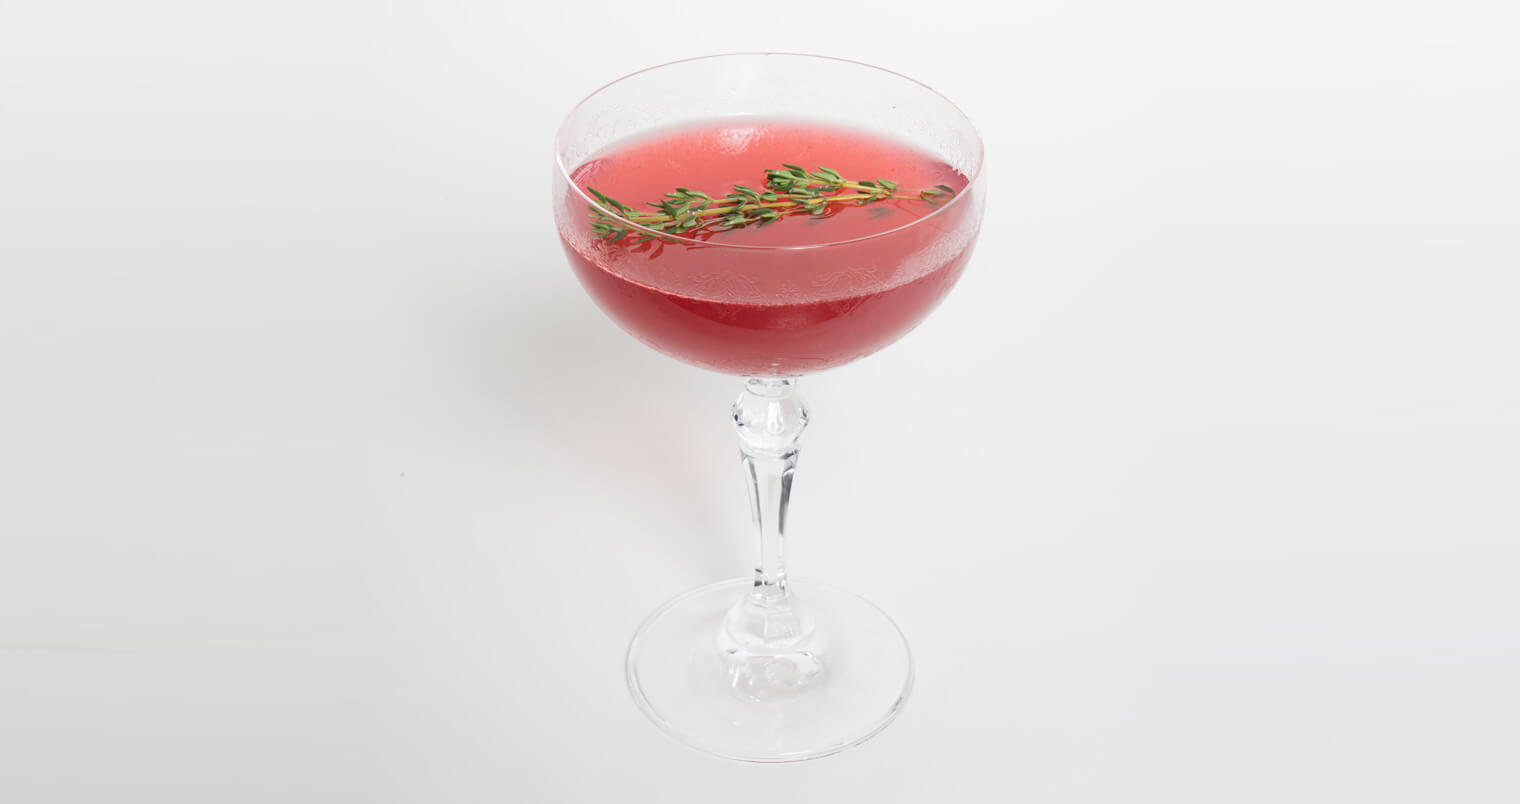 Celebrate Leap Day with Hendrick's Gin, cocktail recipes, featured image